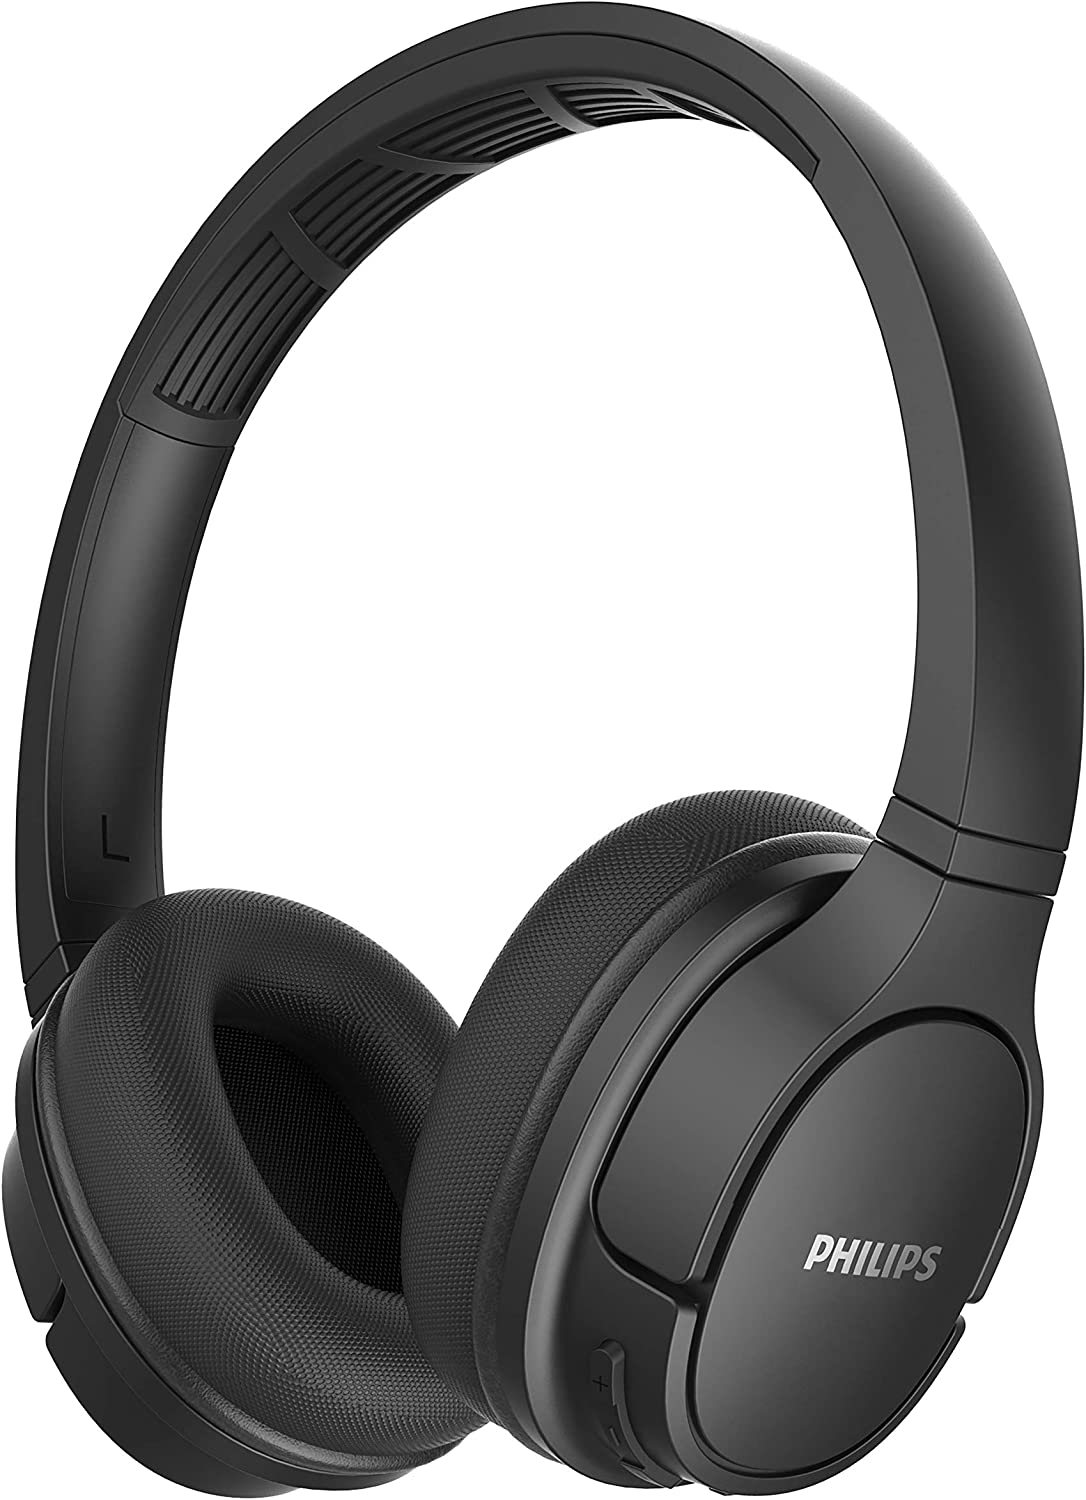 Philips ActionFit Wireless Headphones with Cooling Earcups and 20+ Hours Playtime